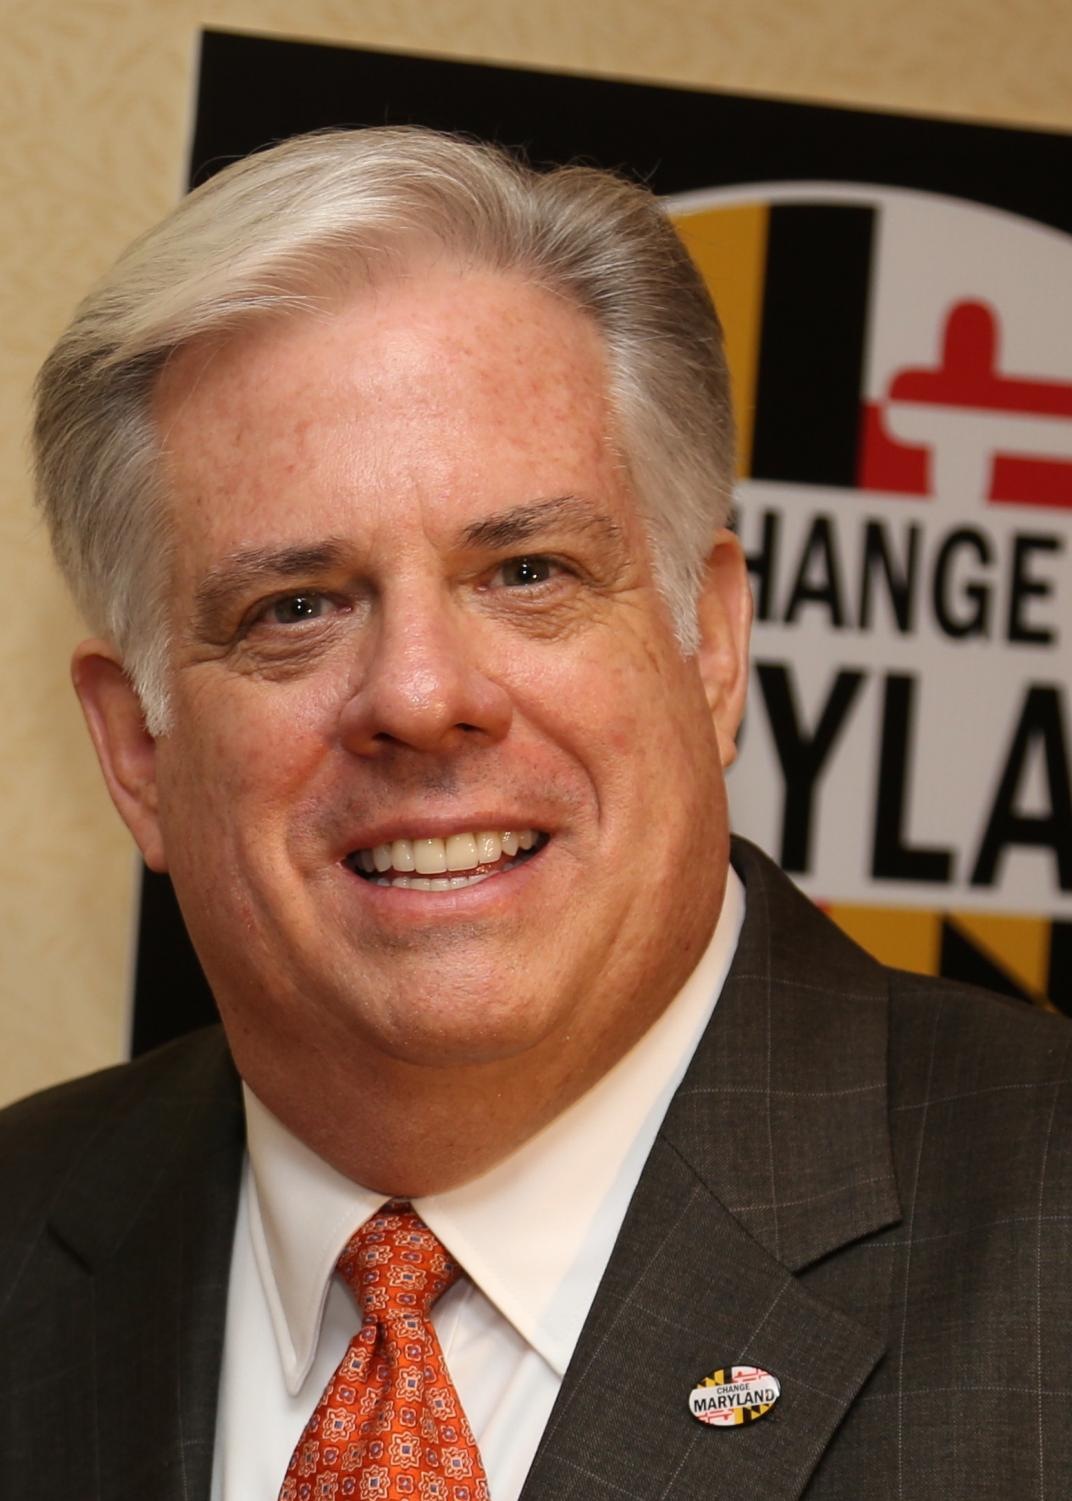 Maryland governor Larry Hogan is being pushed to run for president in 2020. Hogan recently won reelection in the 2018 midterms.